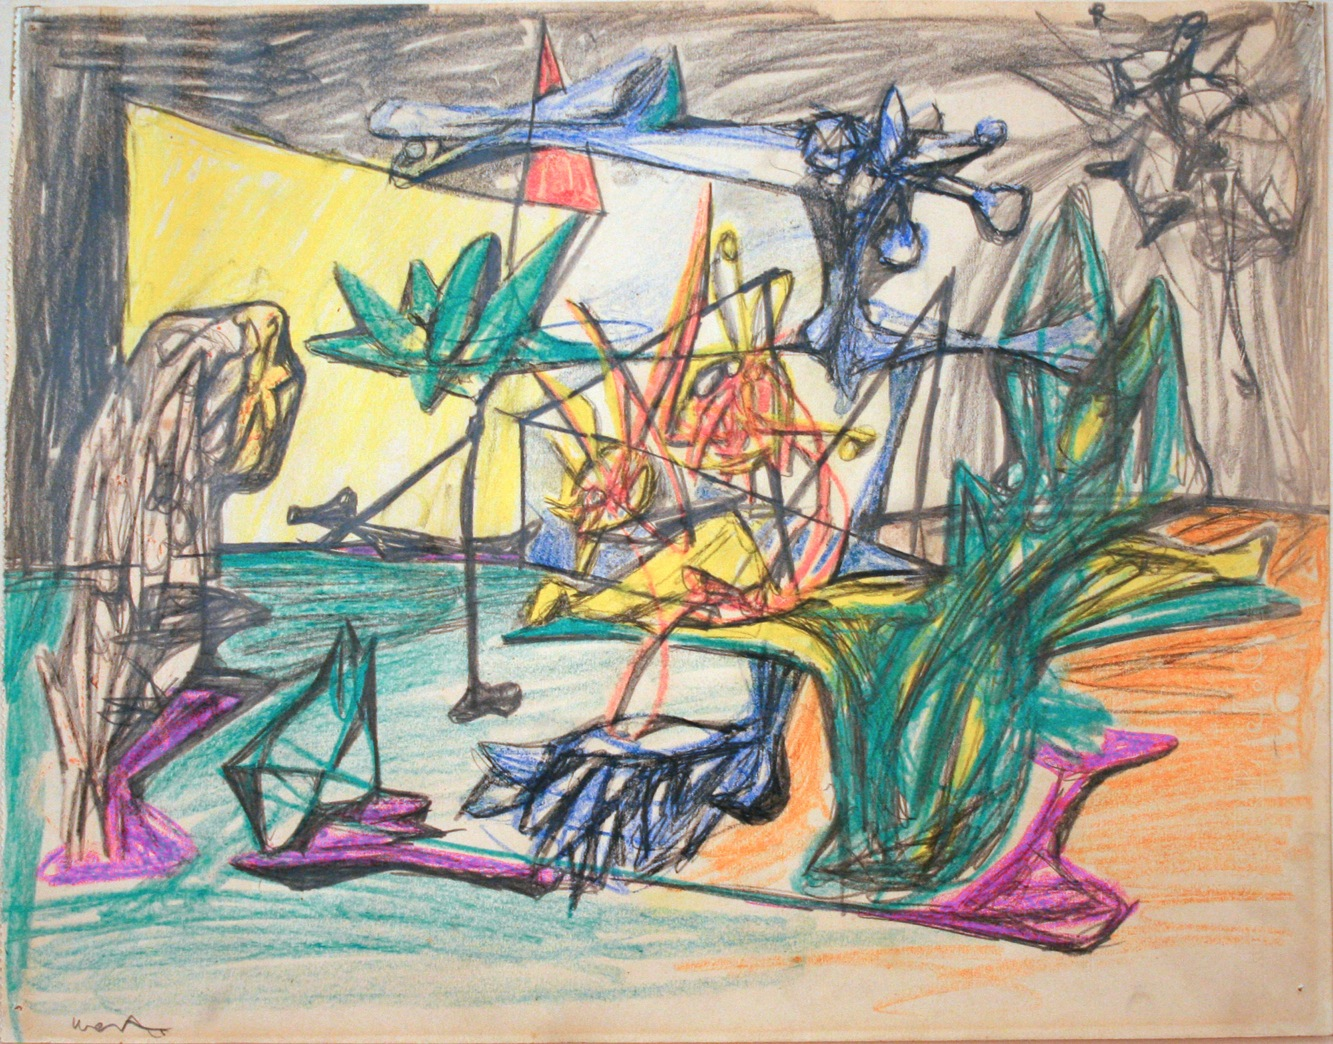 Roberto Matta Psychological Morphology (Meeting The Muse) Graphite, colored pencil on paper, c 1940